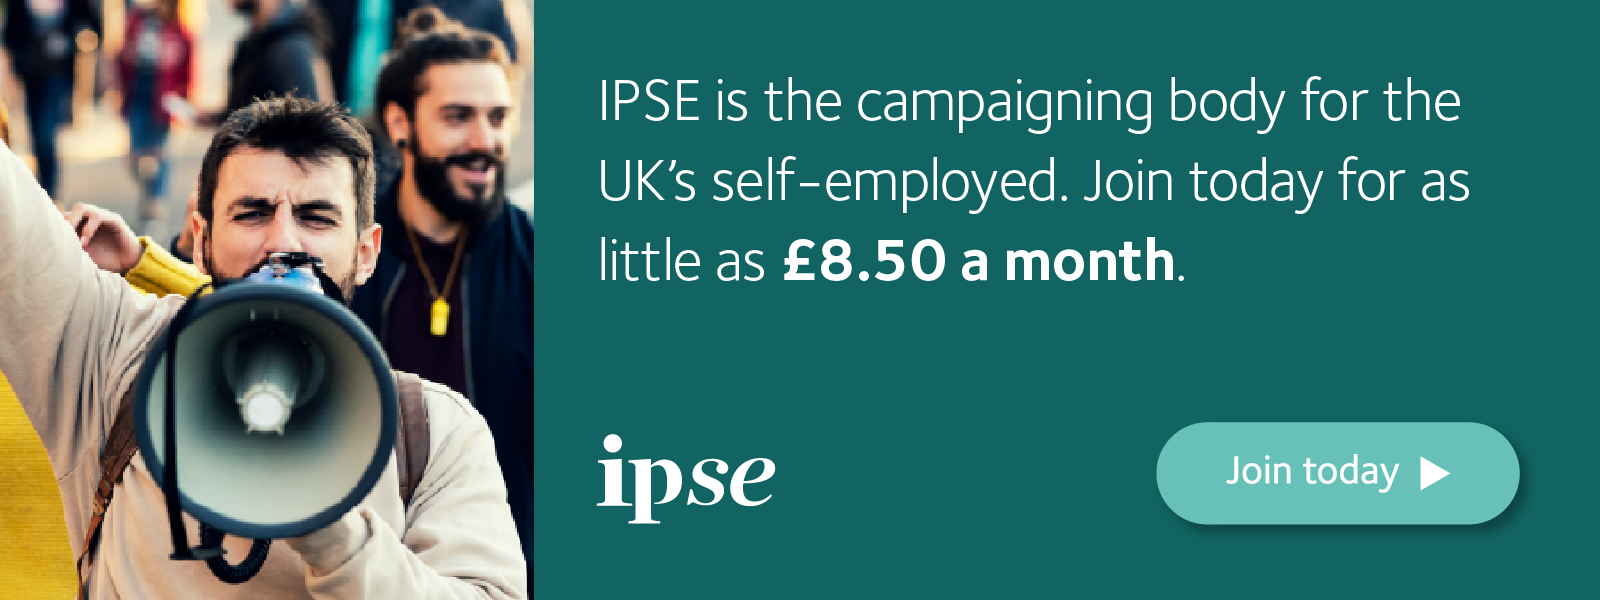 Advert to become a member of IPSE